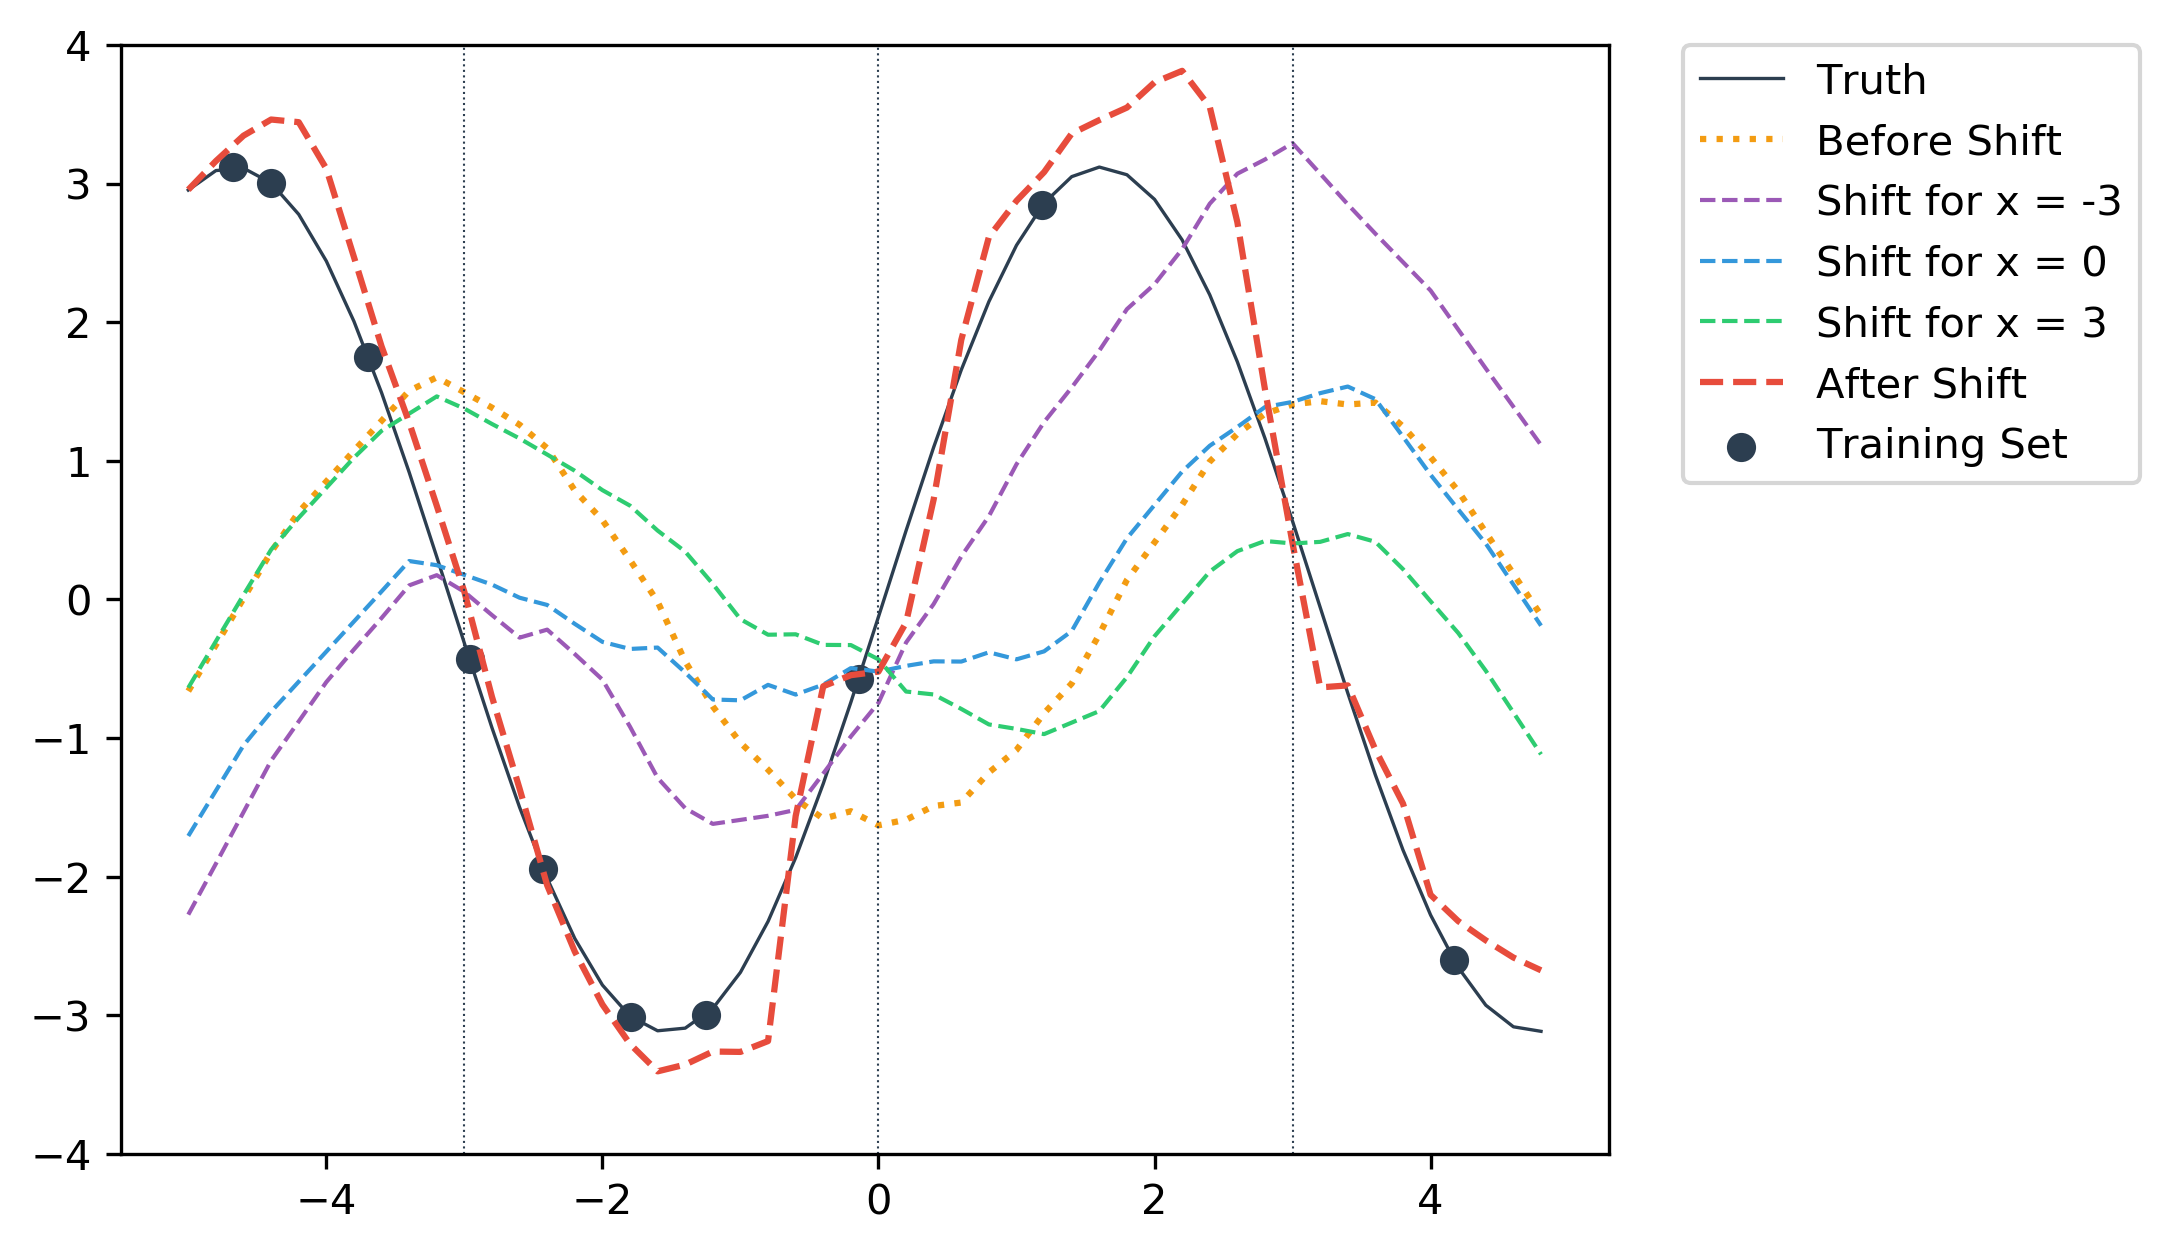 Applying shift from x = -3.0 to all test samples.